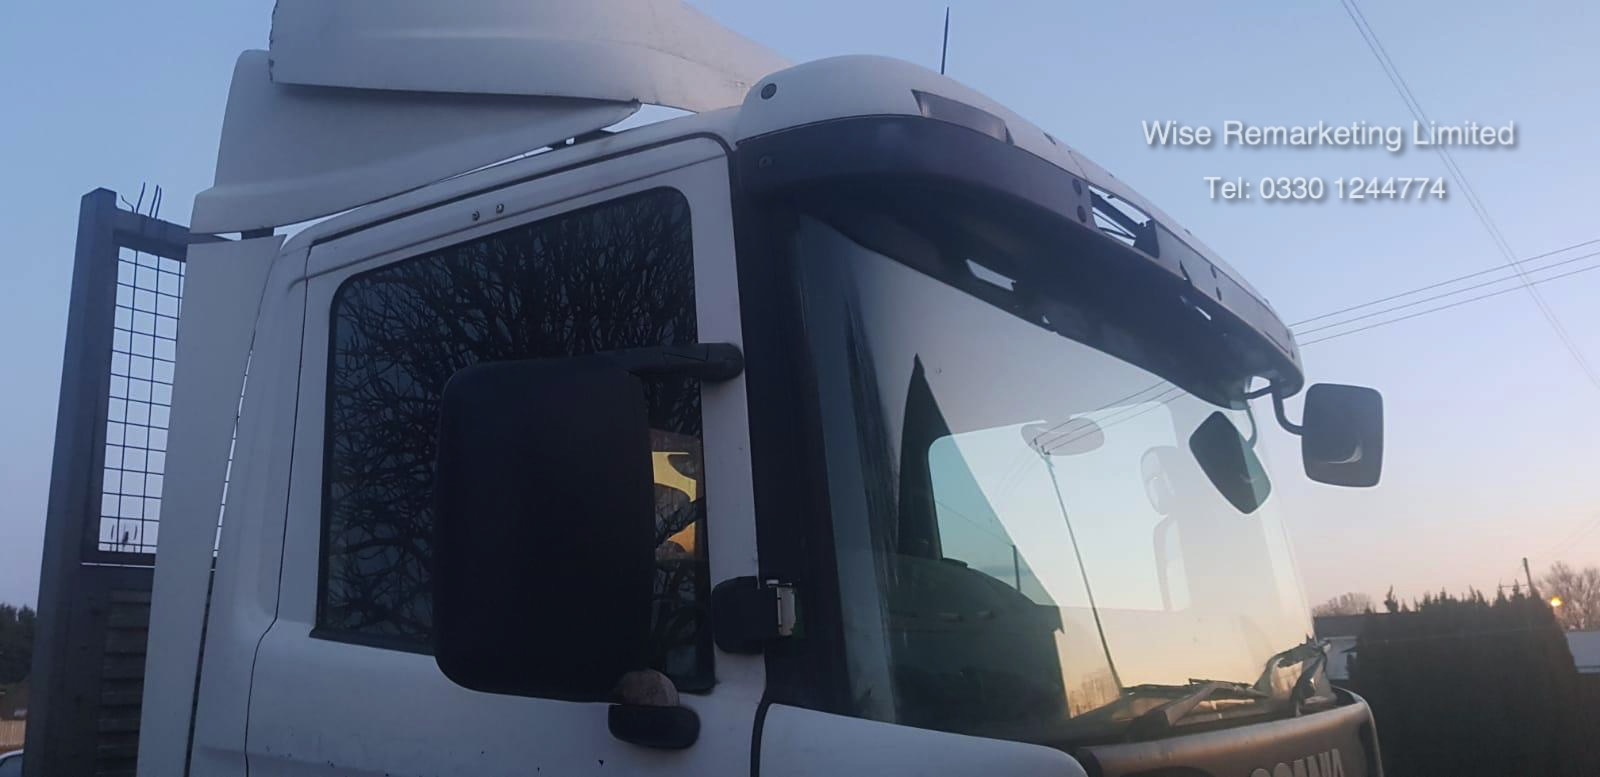 (Reserve Met) Scania 94d.220 18 Tonne 4x2 Flat Bed Lorry - W Reg 2000 Year - SAVE 20% NO VAT - Image 22 of 30